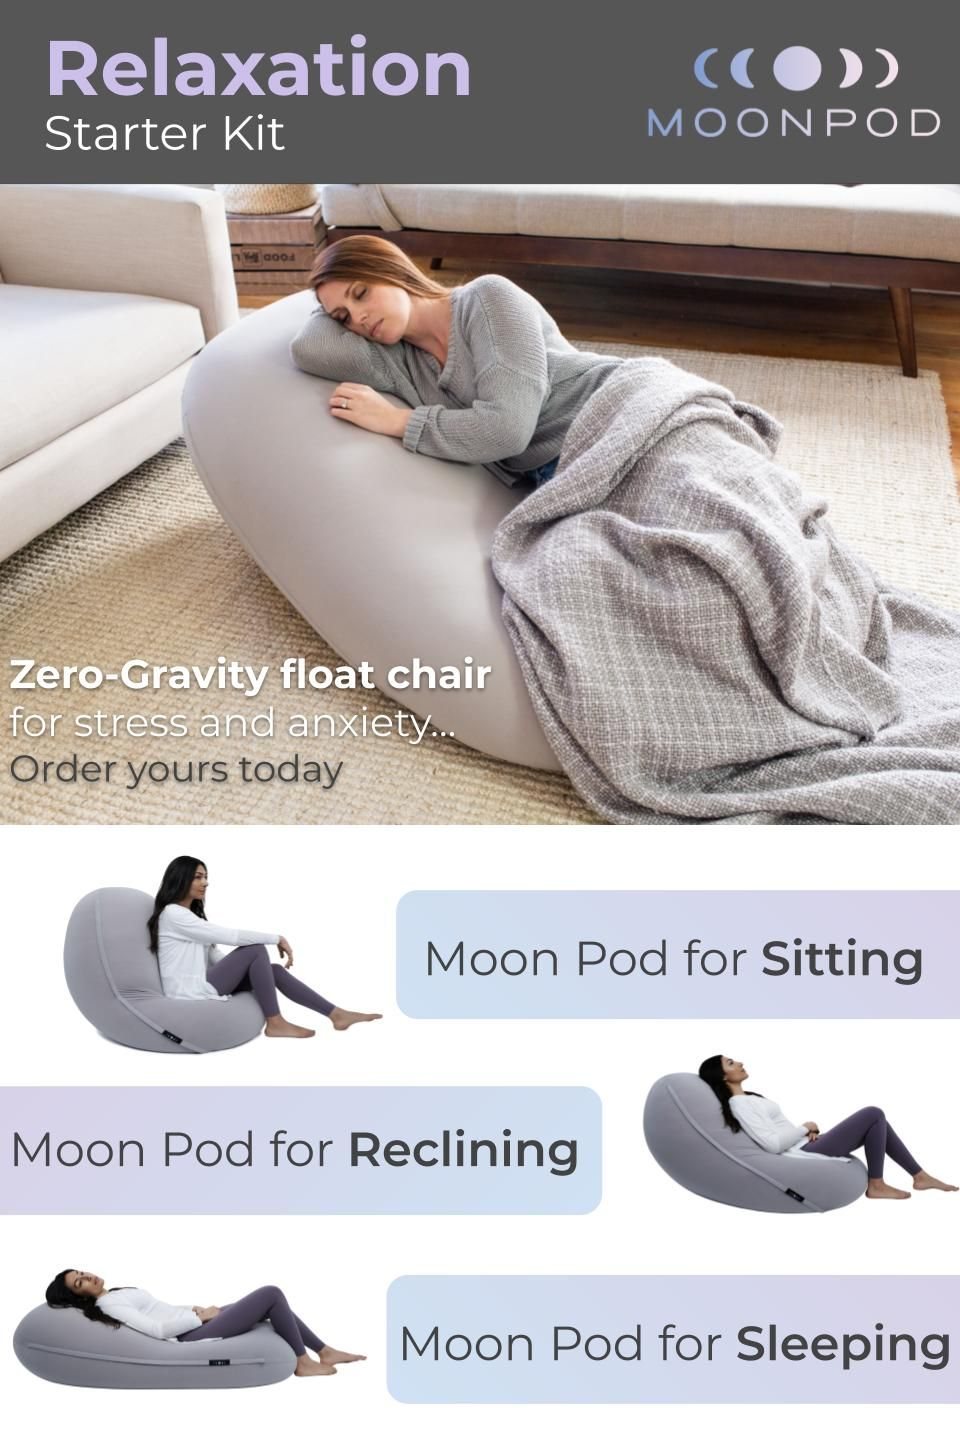 MOON POD in 2020 Home, Interior design living room, Home